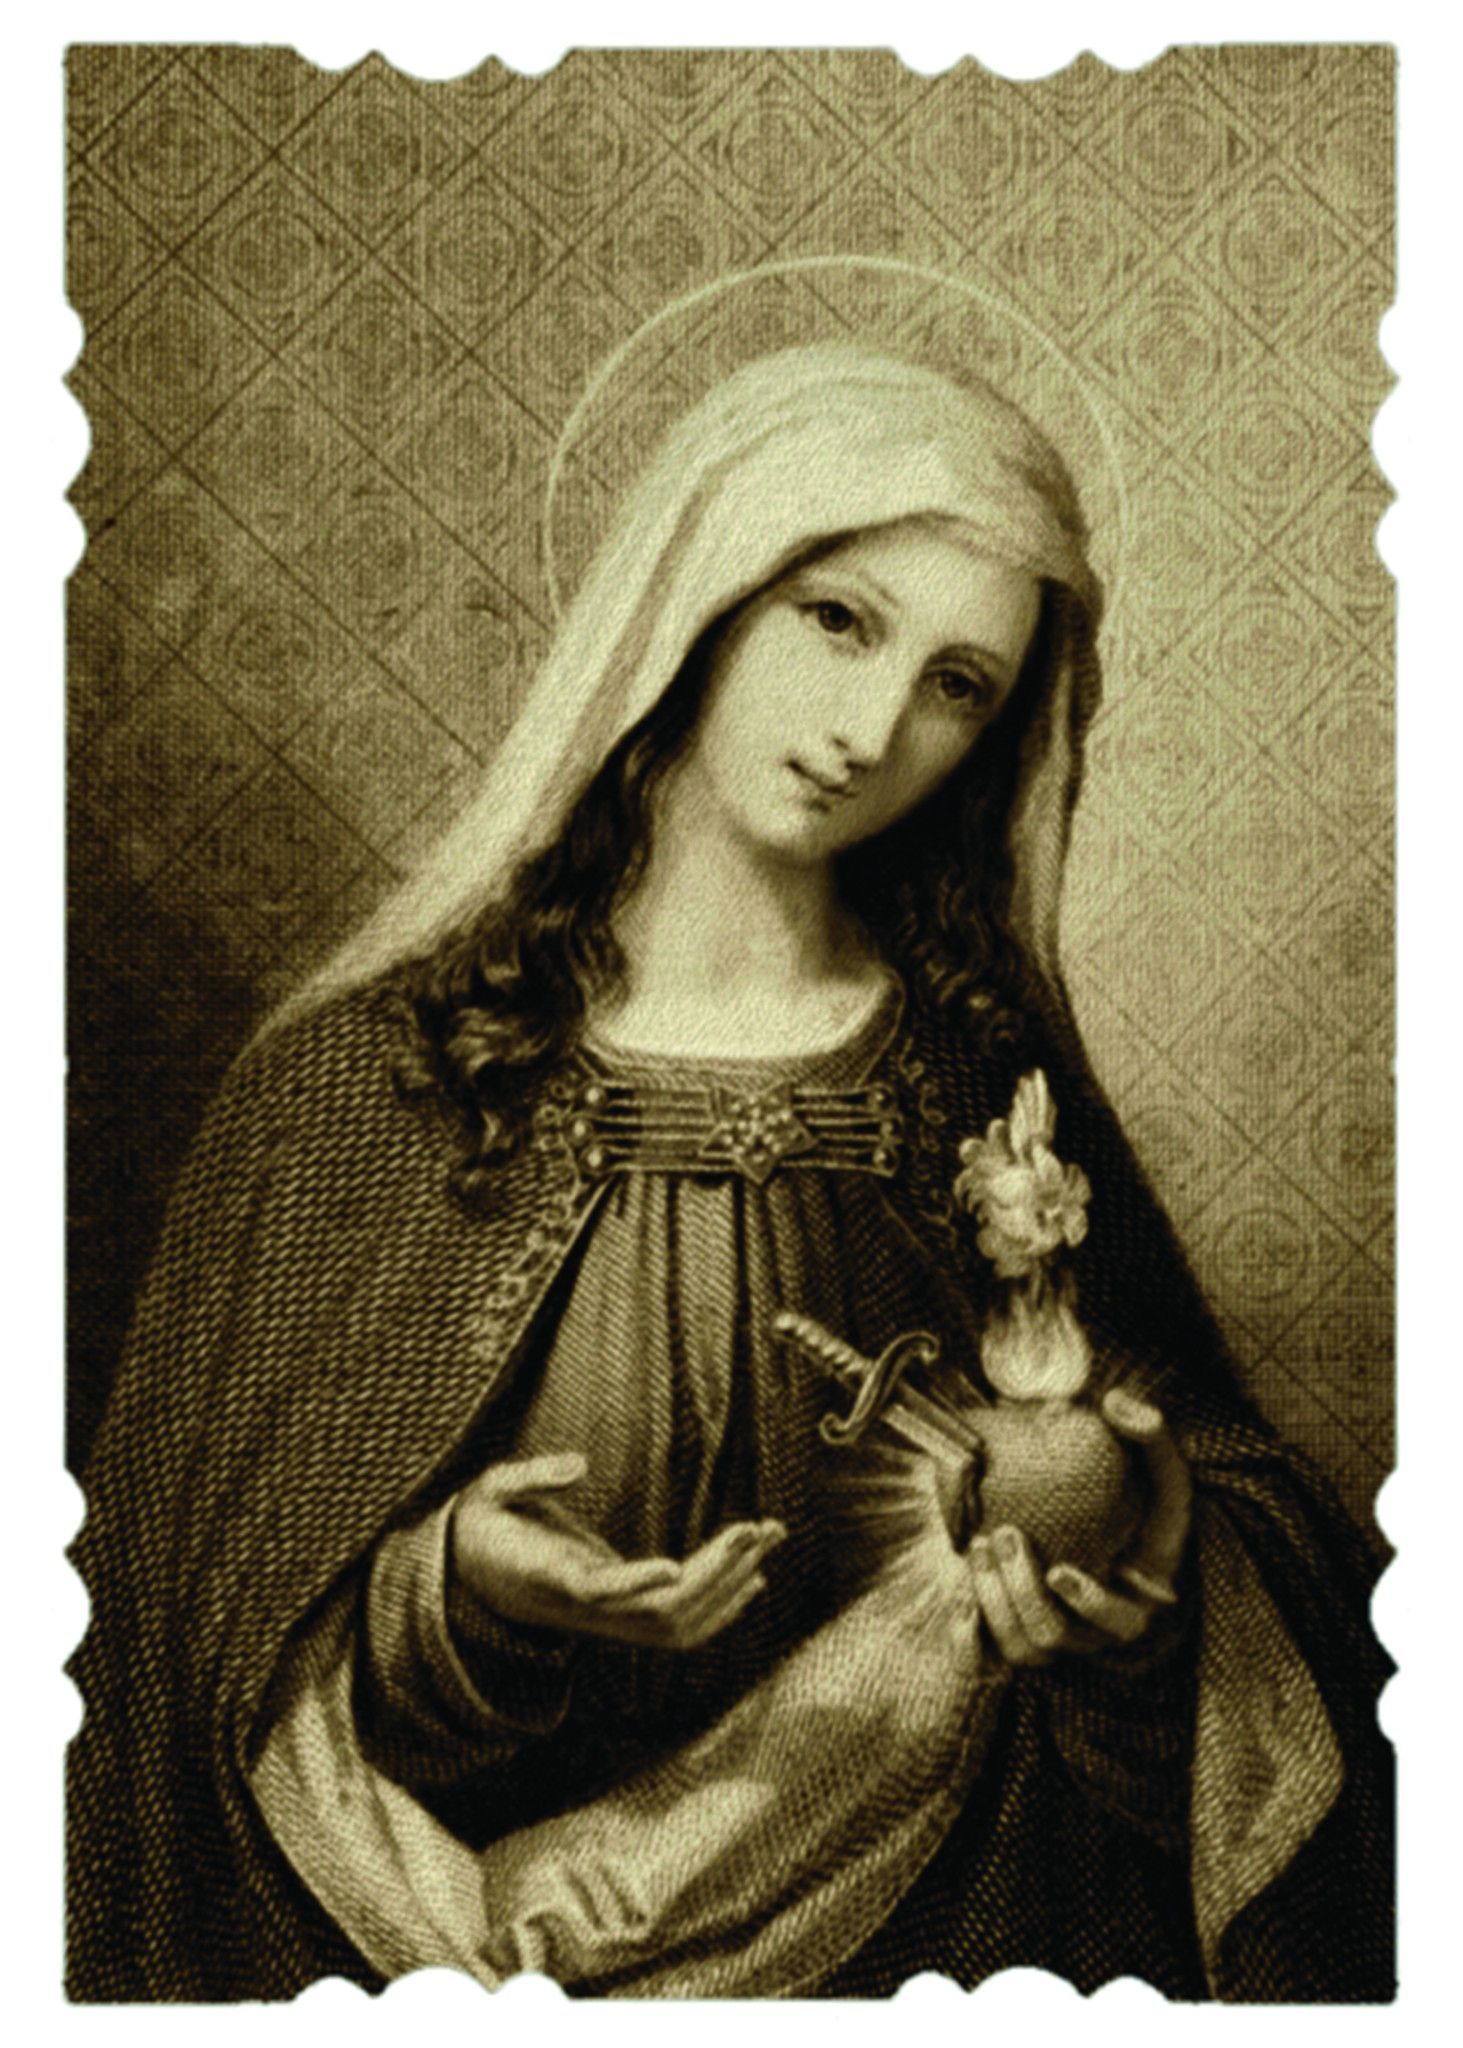 Glossy print of the Our Lady of Sorrows holy card image suitable for framing. A Full of Grace USA Original Product Printed on Sterling Premium photo paper (made in U.S. paper mills in Kentucky, Maine,